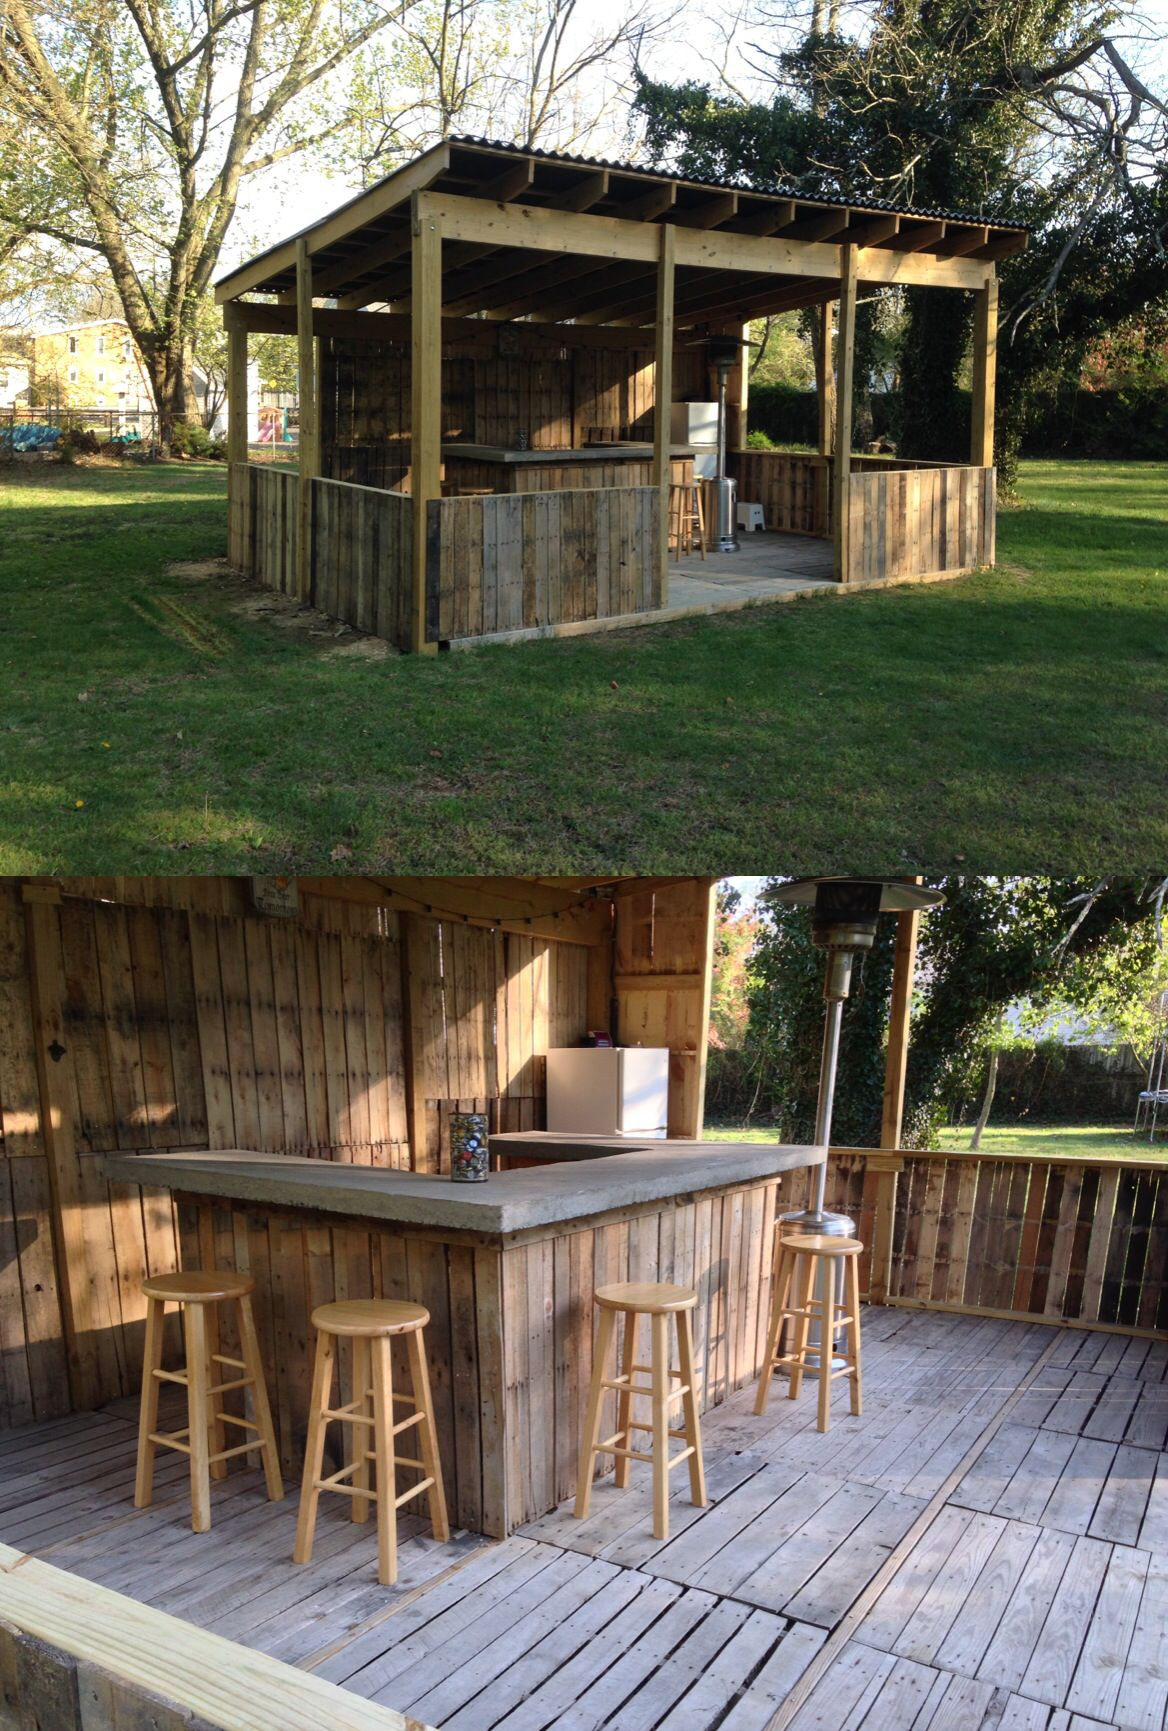 Outdoor Bar Made From Palettes Concrete Top This Is Sweeeeeet Lookn